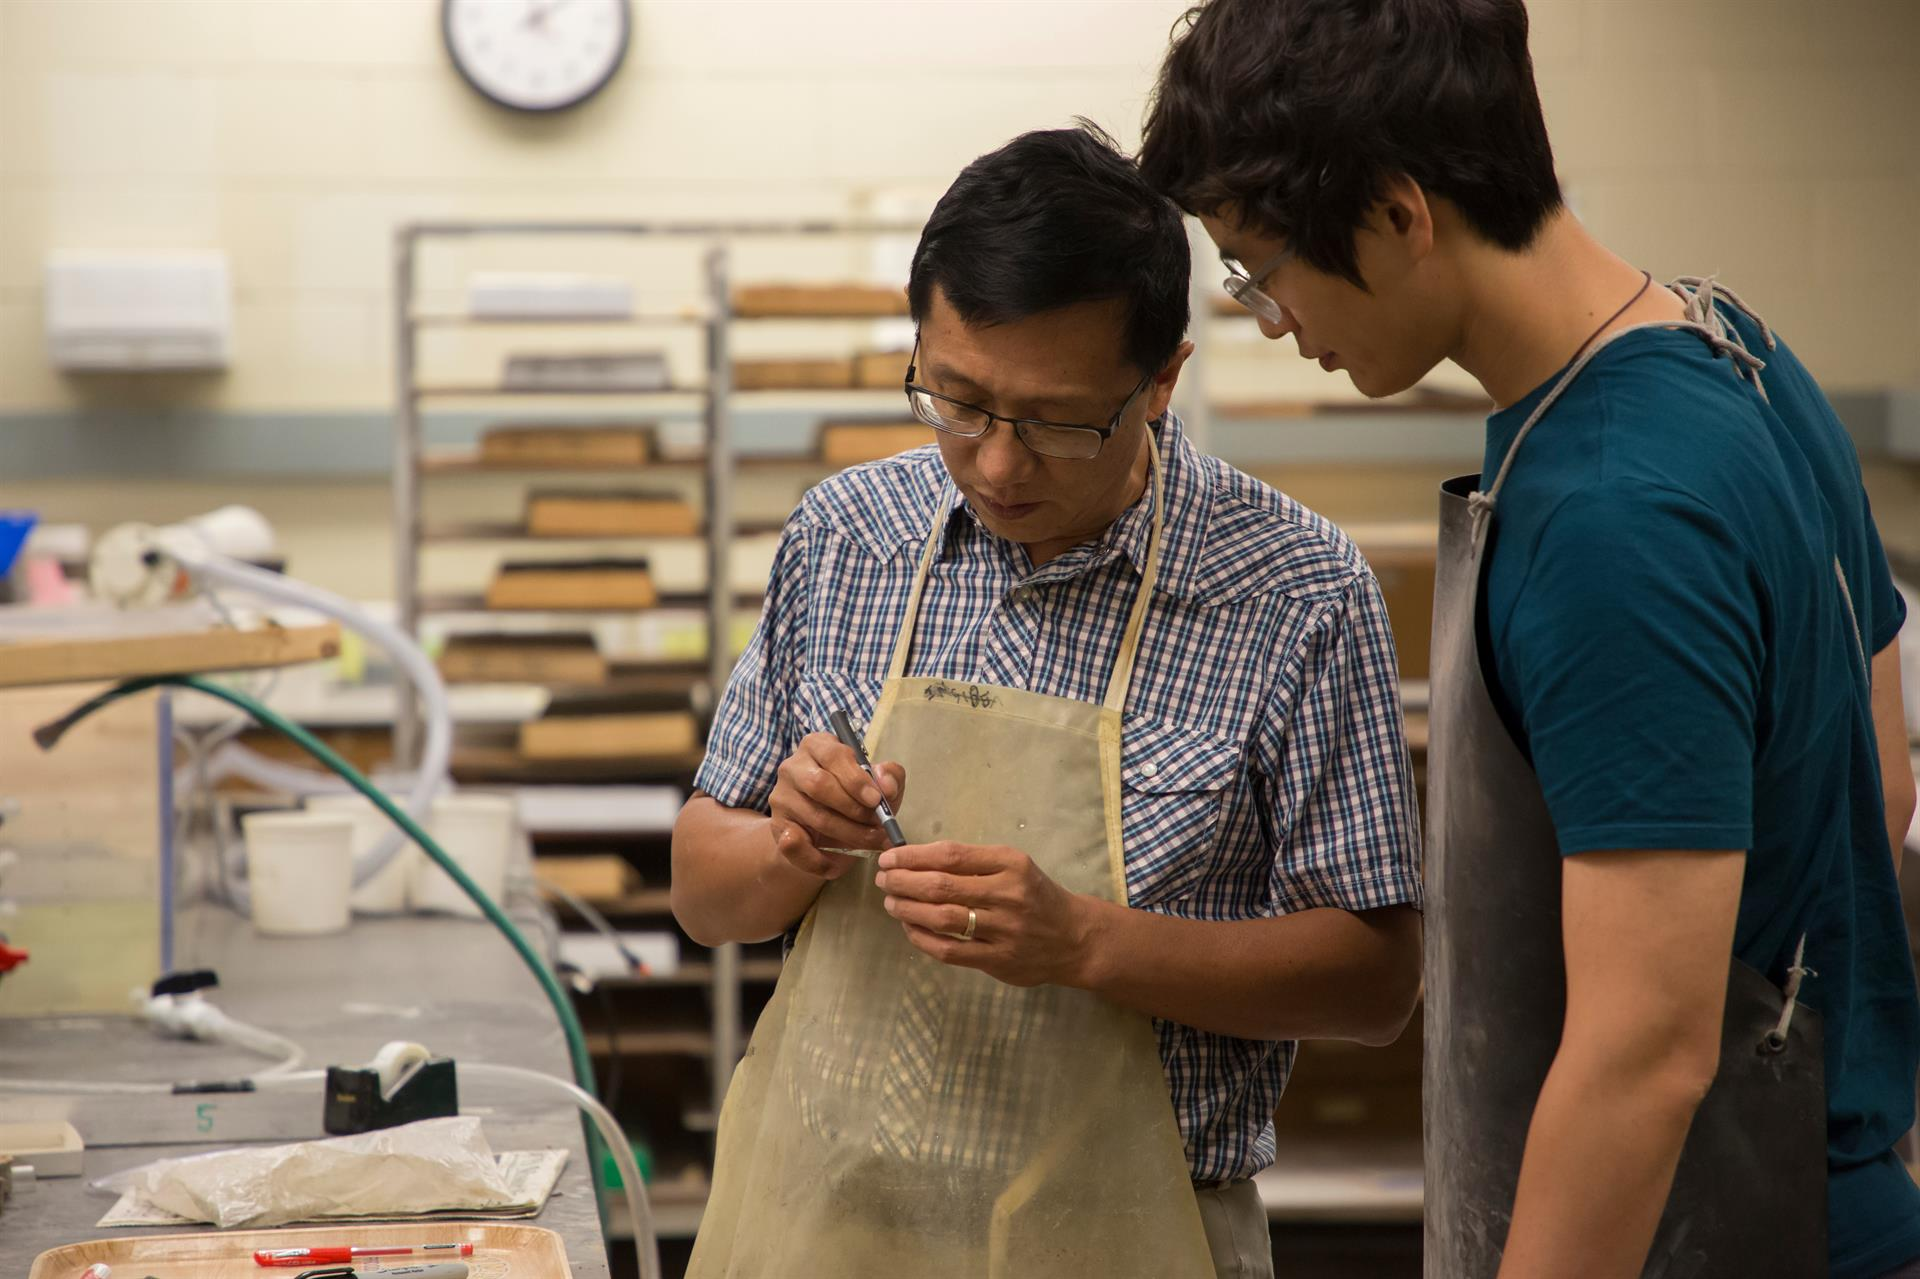 Dr. Wan Yang shows his research student Ziyue Ju how to properly label and cut rock samples for analysis.